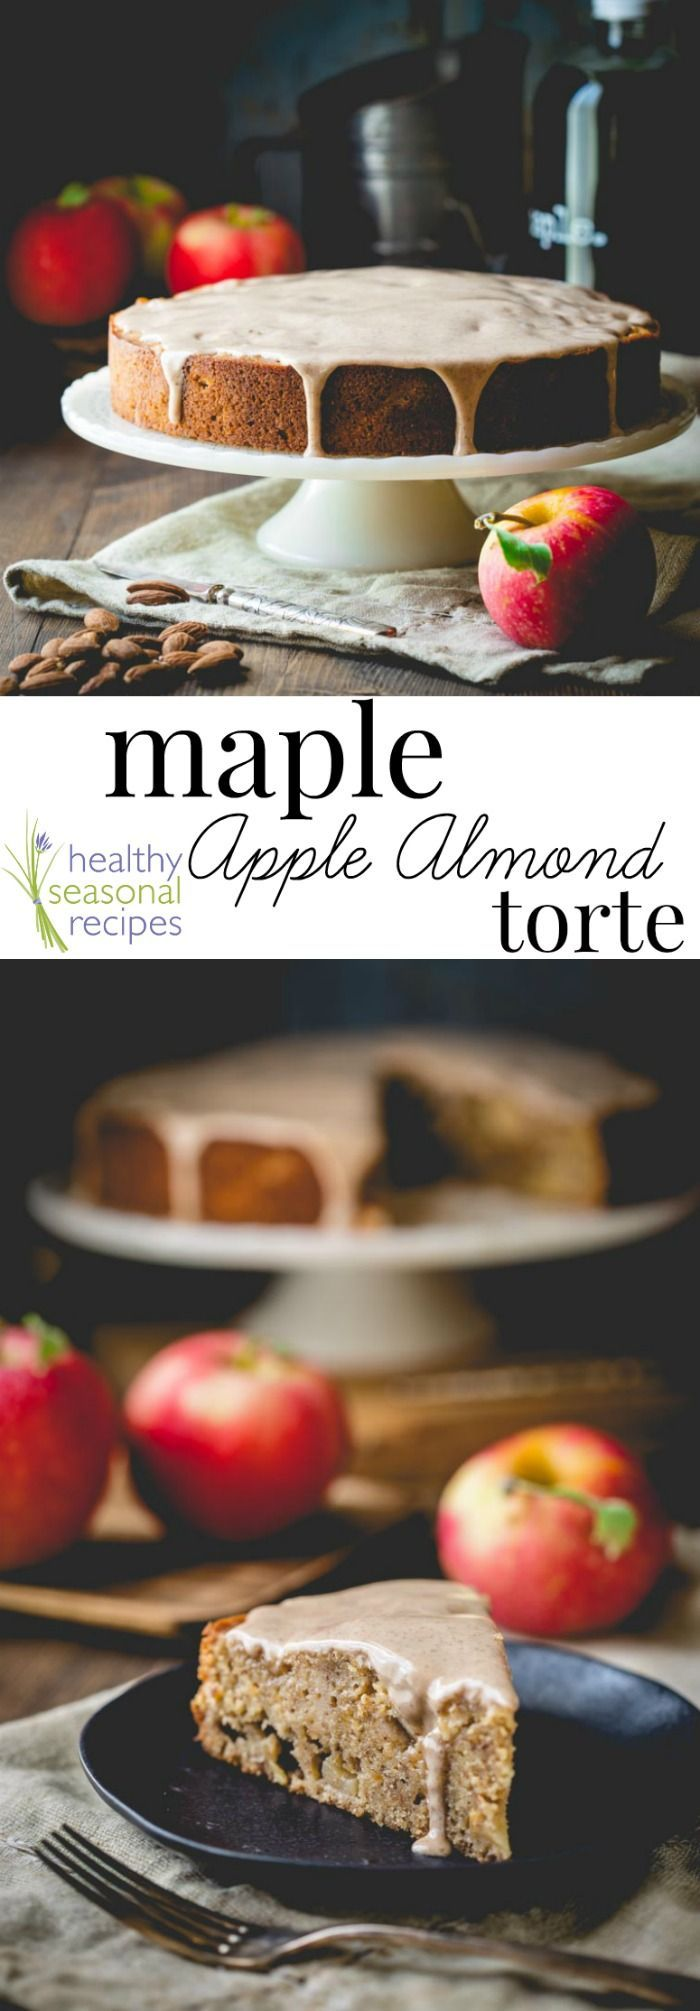 There is a whole world out there of autumnal baking goodness beyond pumpkin. Like this Maple Apple Almond Cake. It's so moist and delicious. And the cinnamon glaze takes it over the top. It's basically Fall in a dessert! Healthy Seasonal Recipes